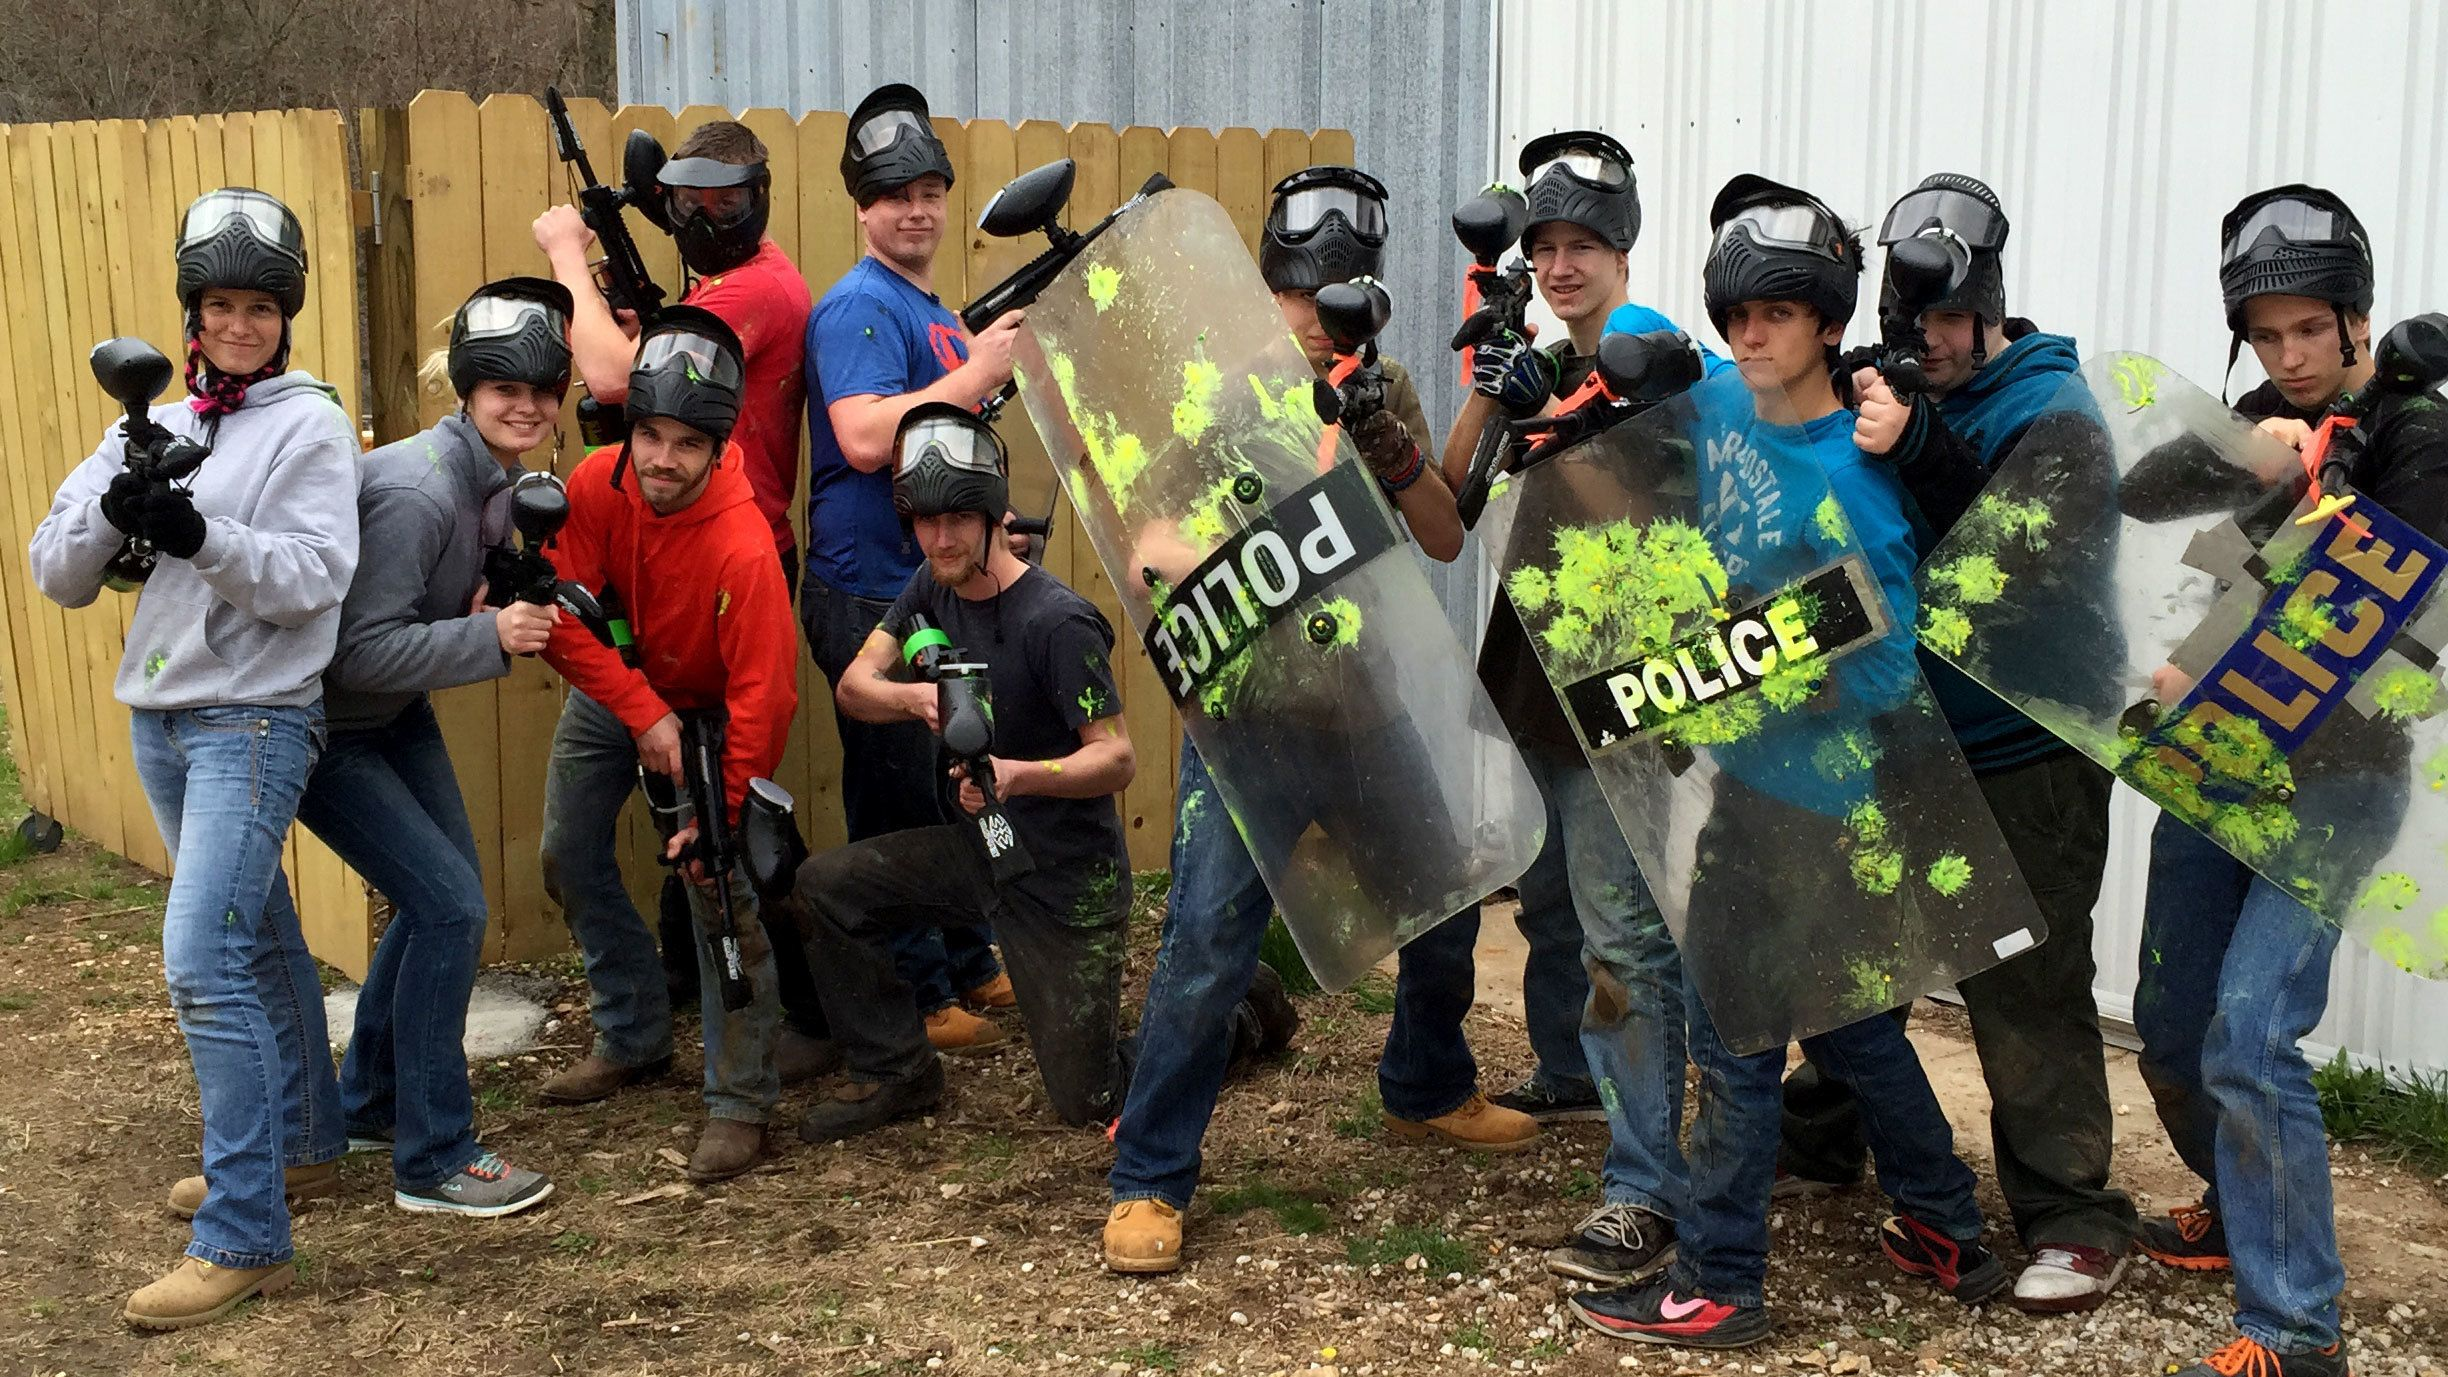 Group of paintballers with guns and shields on a playfield in St Louis